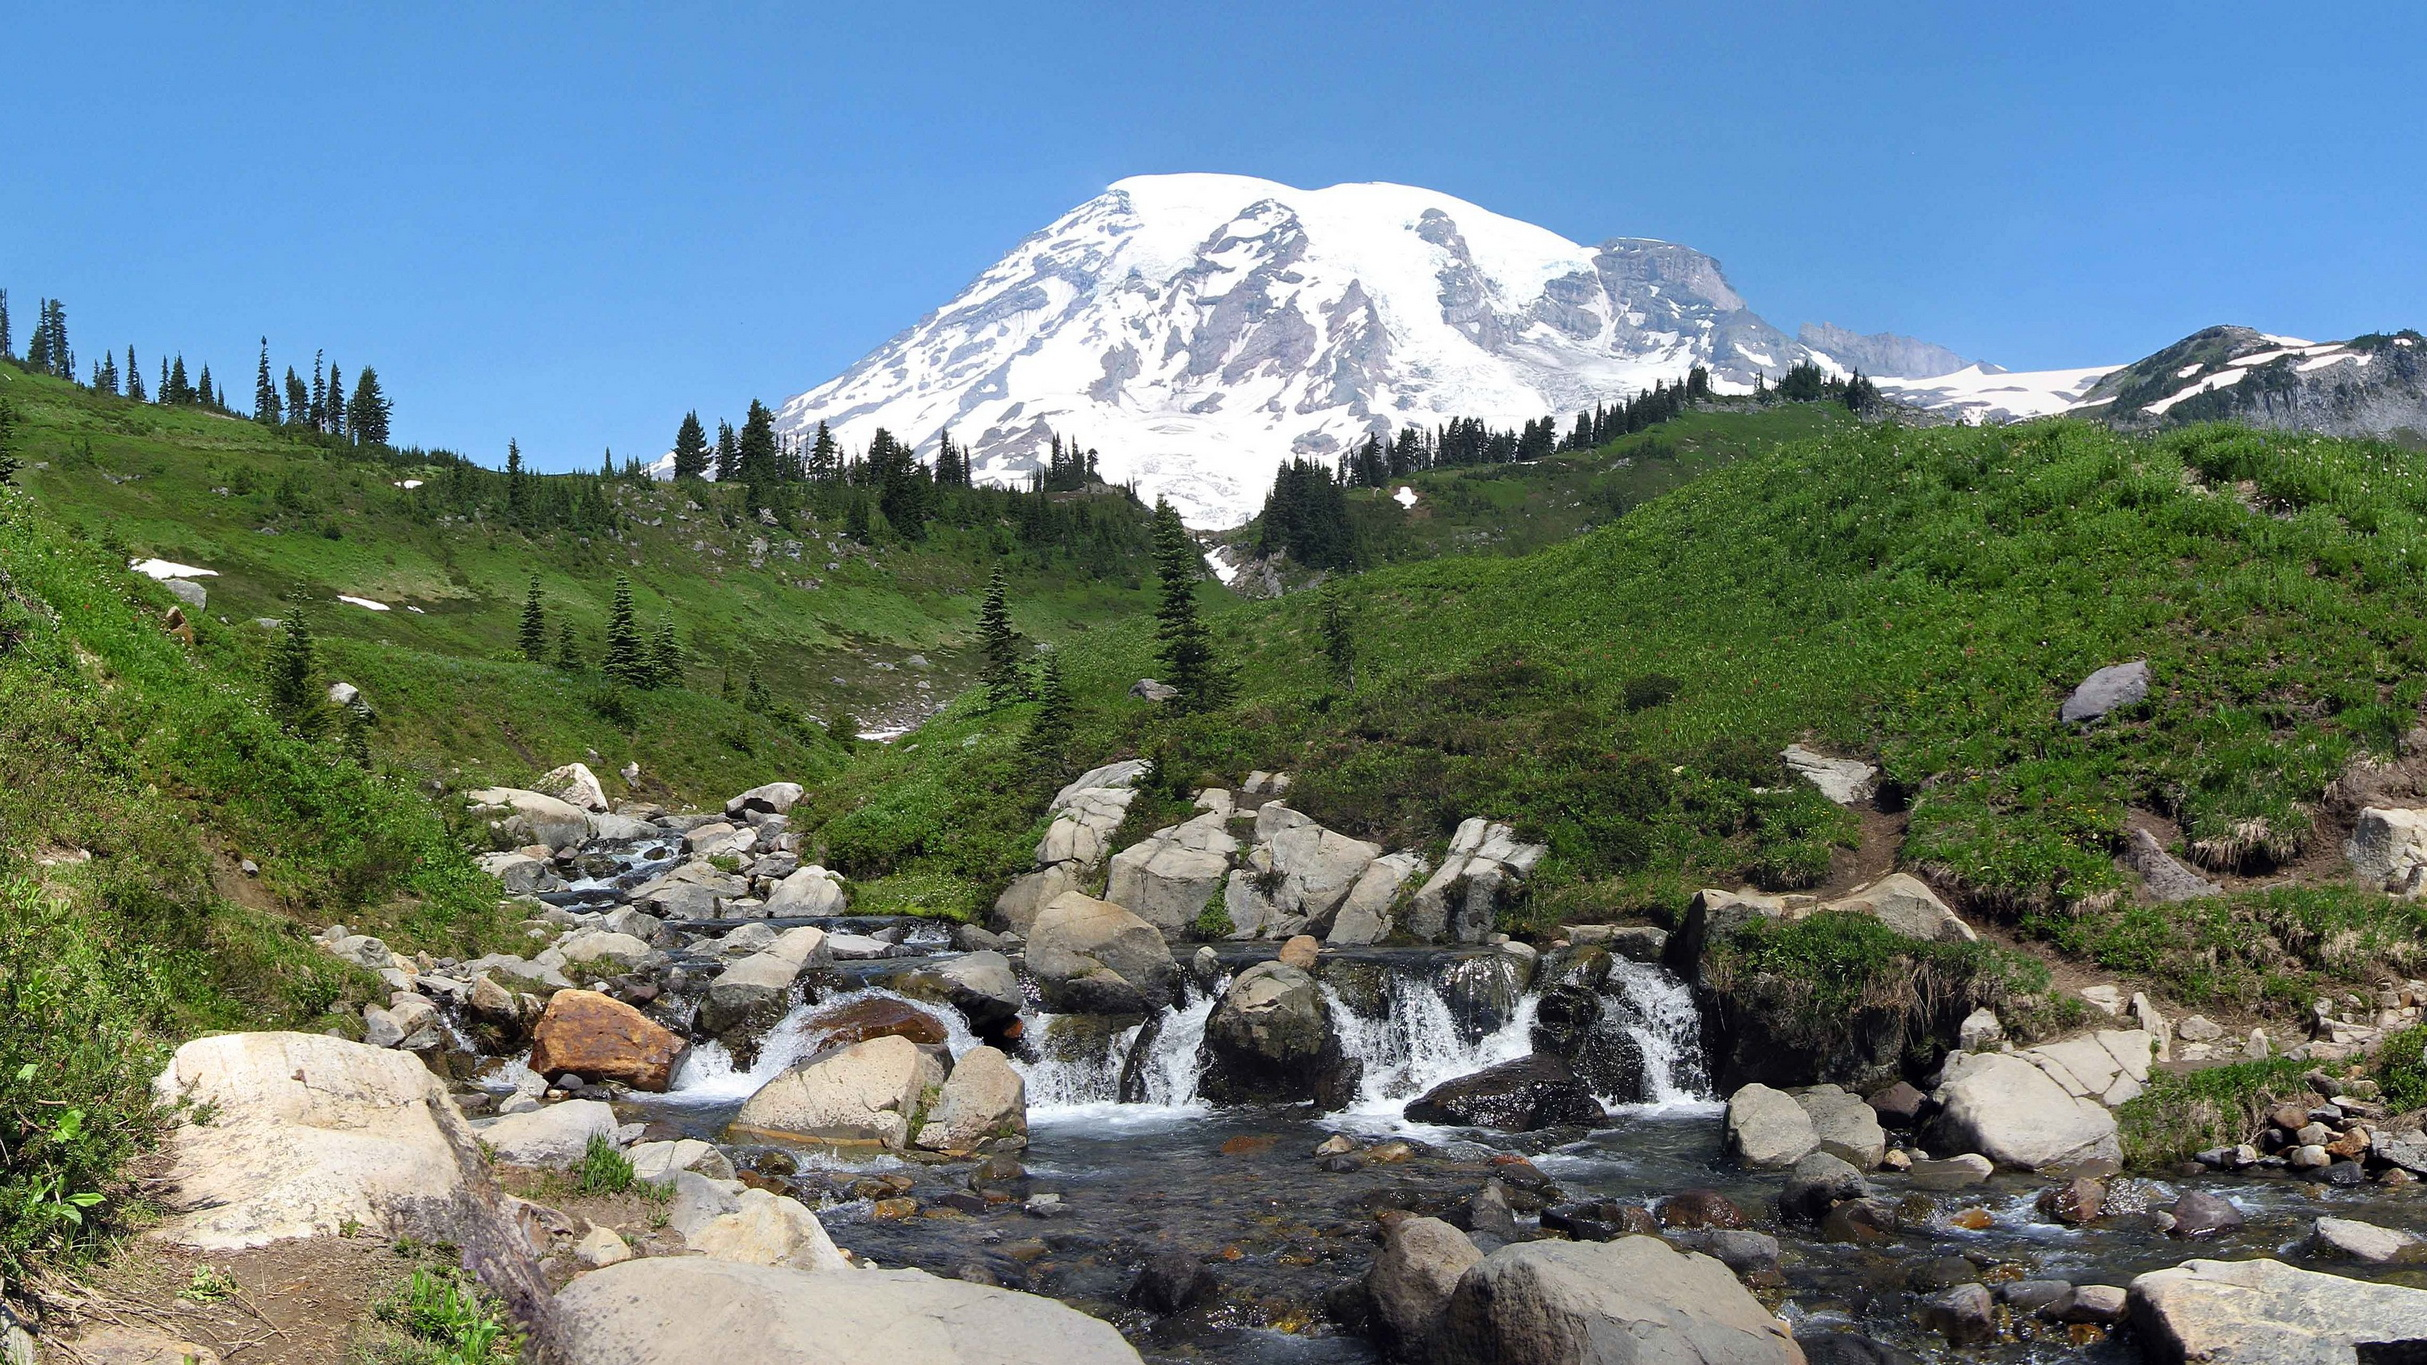 149818 download wallpaper Nature, Rainier, Washington, Usa, United States, Rivers, Mountains screensavers and pictures for free